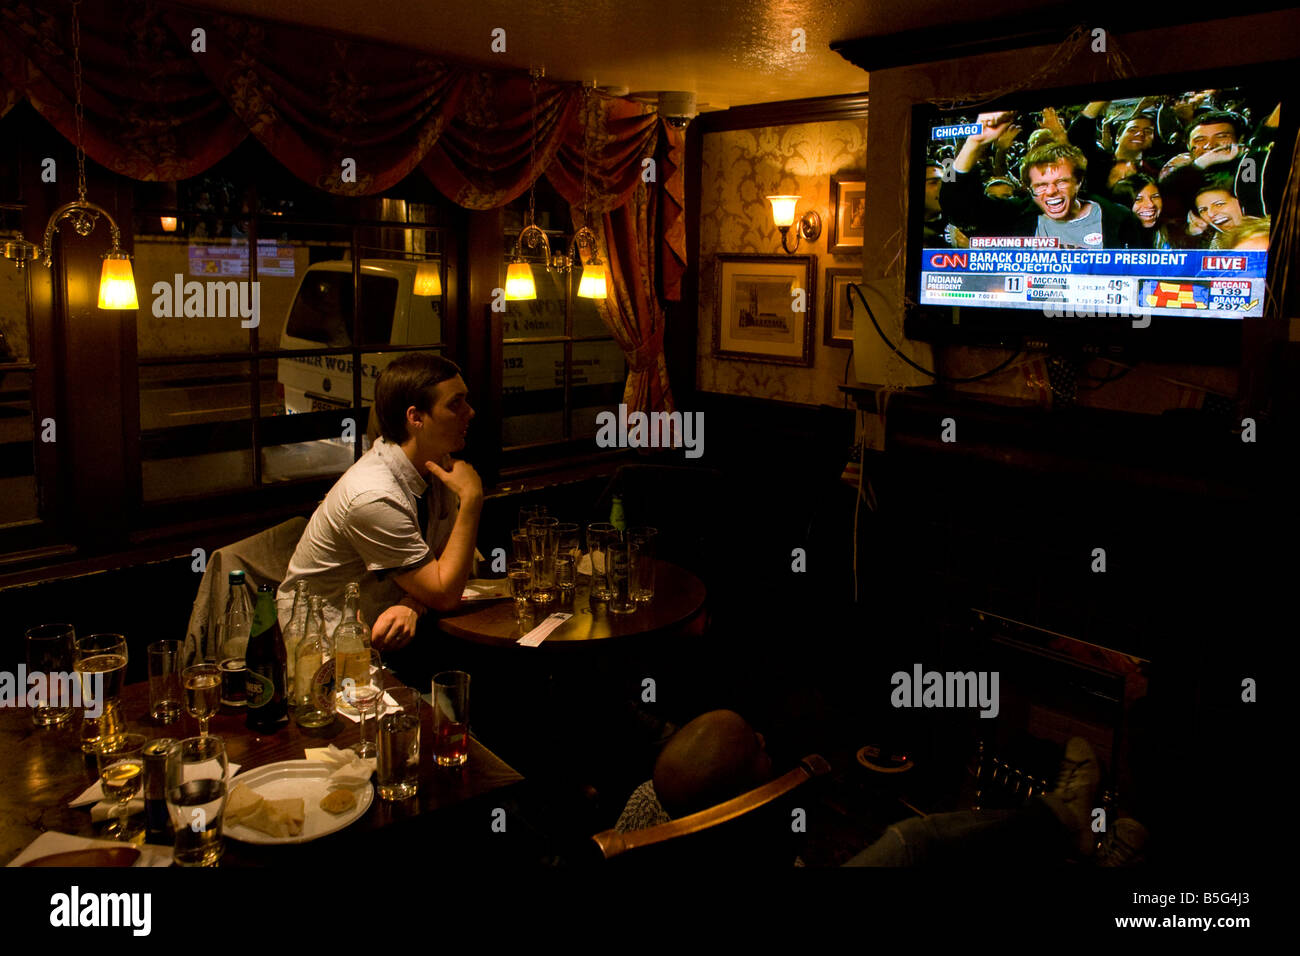 Young man watches TV after Barack Obama is declared Presidential election winner by CNN during overnight party in - Stock Image